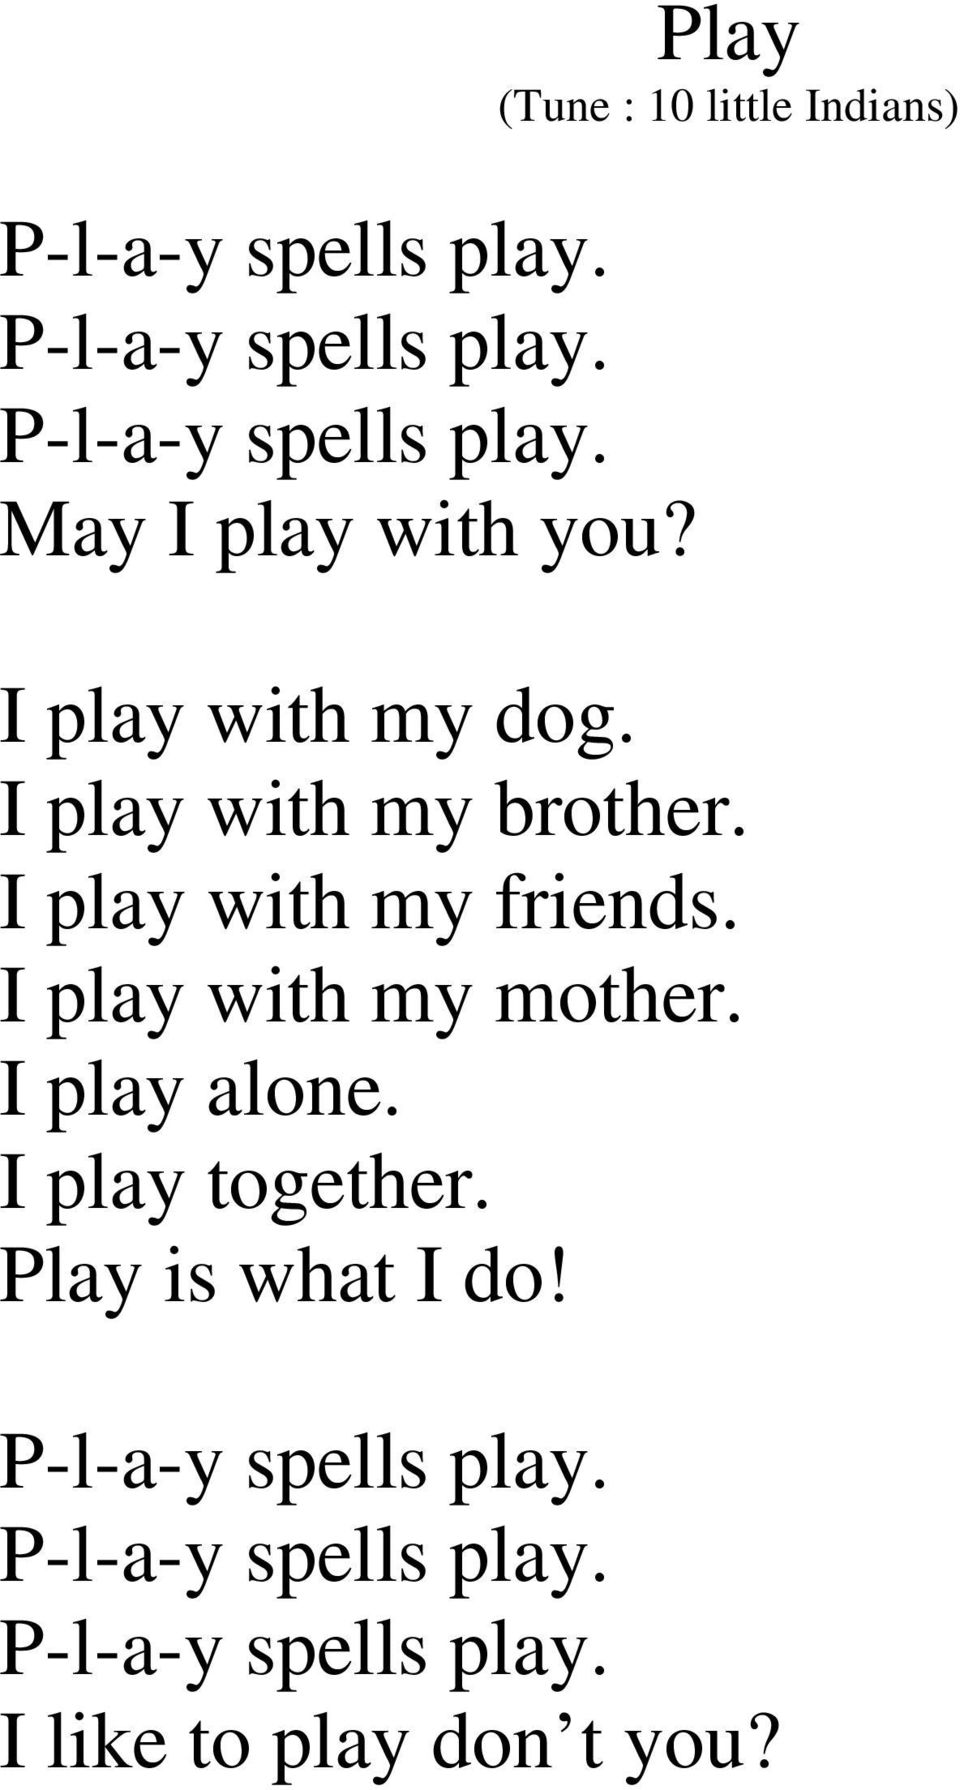 I play with my friends. I play with my mother. I play alone. I play together.